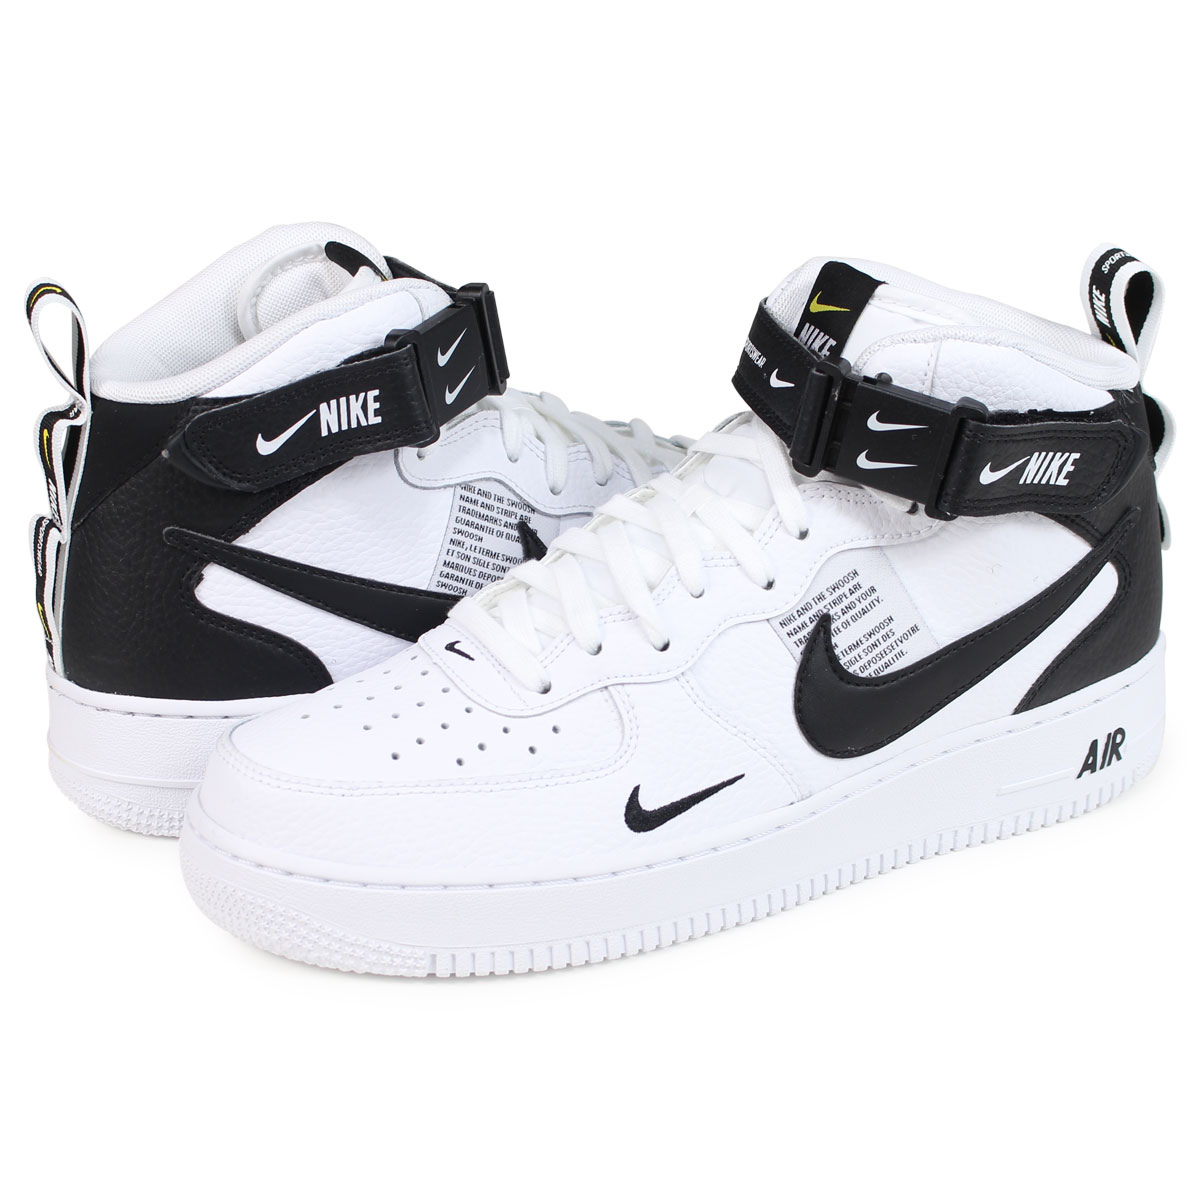 quality design 9400f f2ee9  brand NIKE getting high popularity from sneakers freak